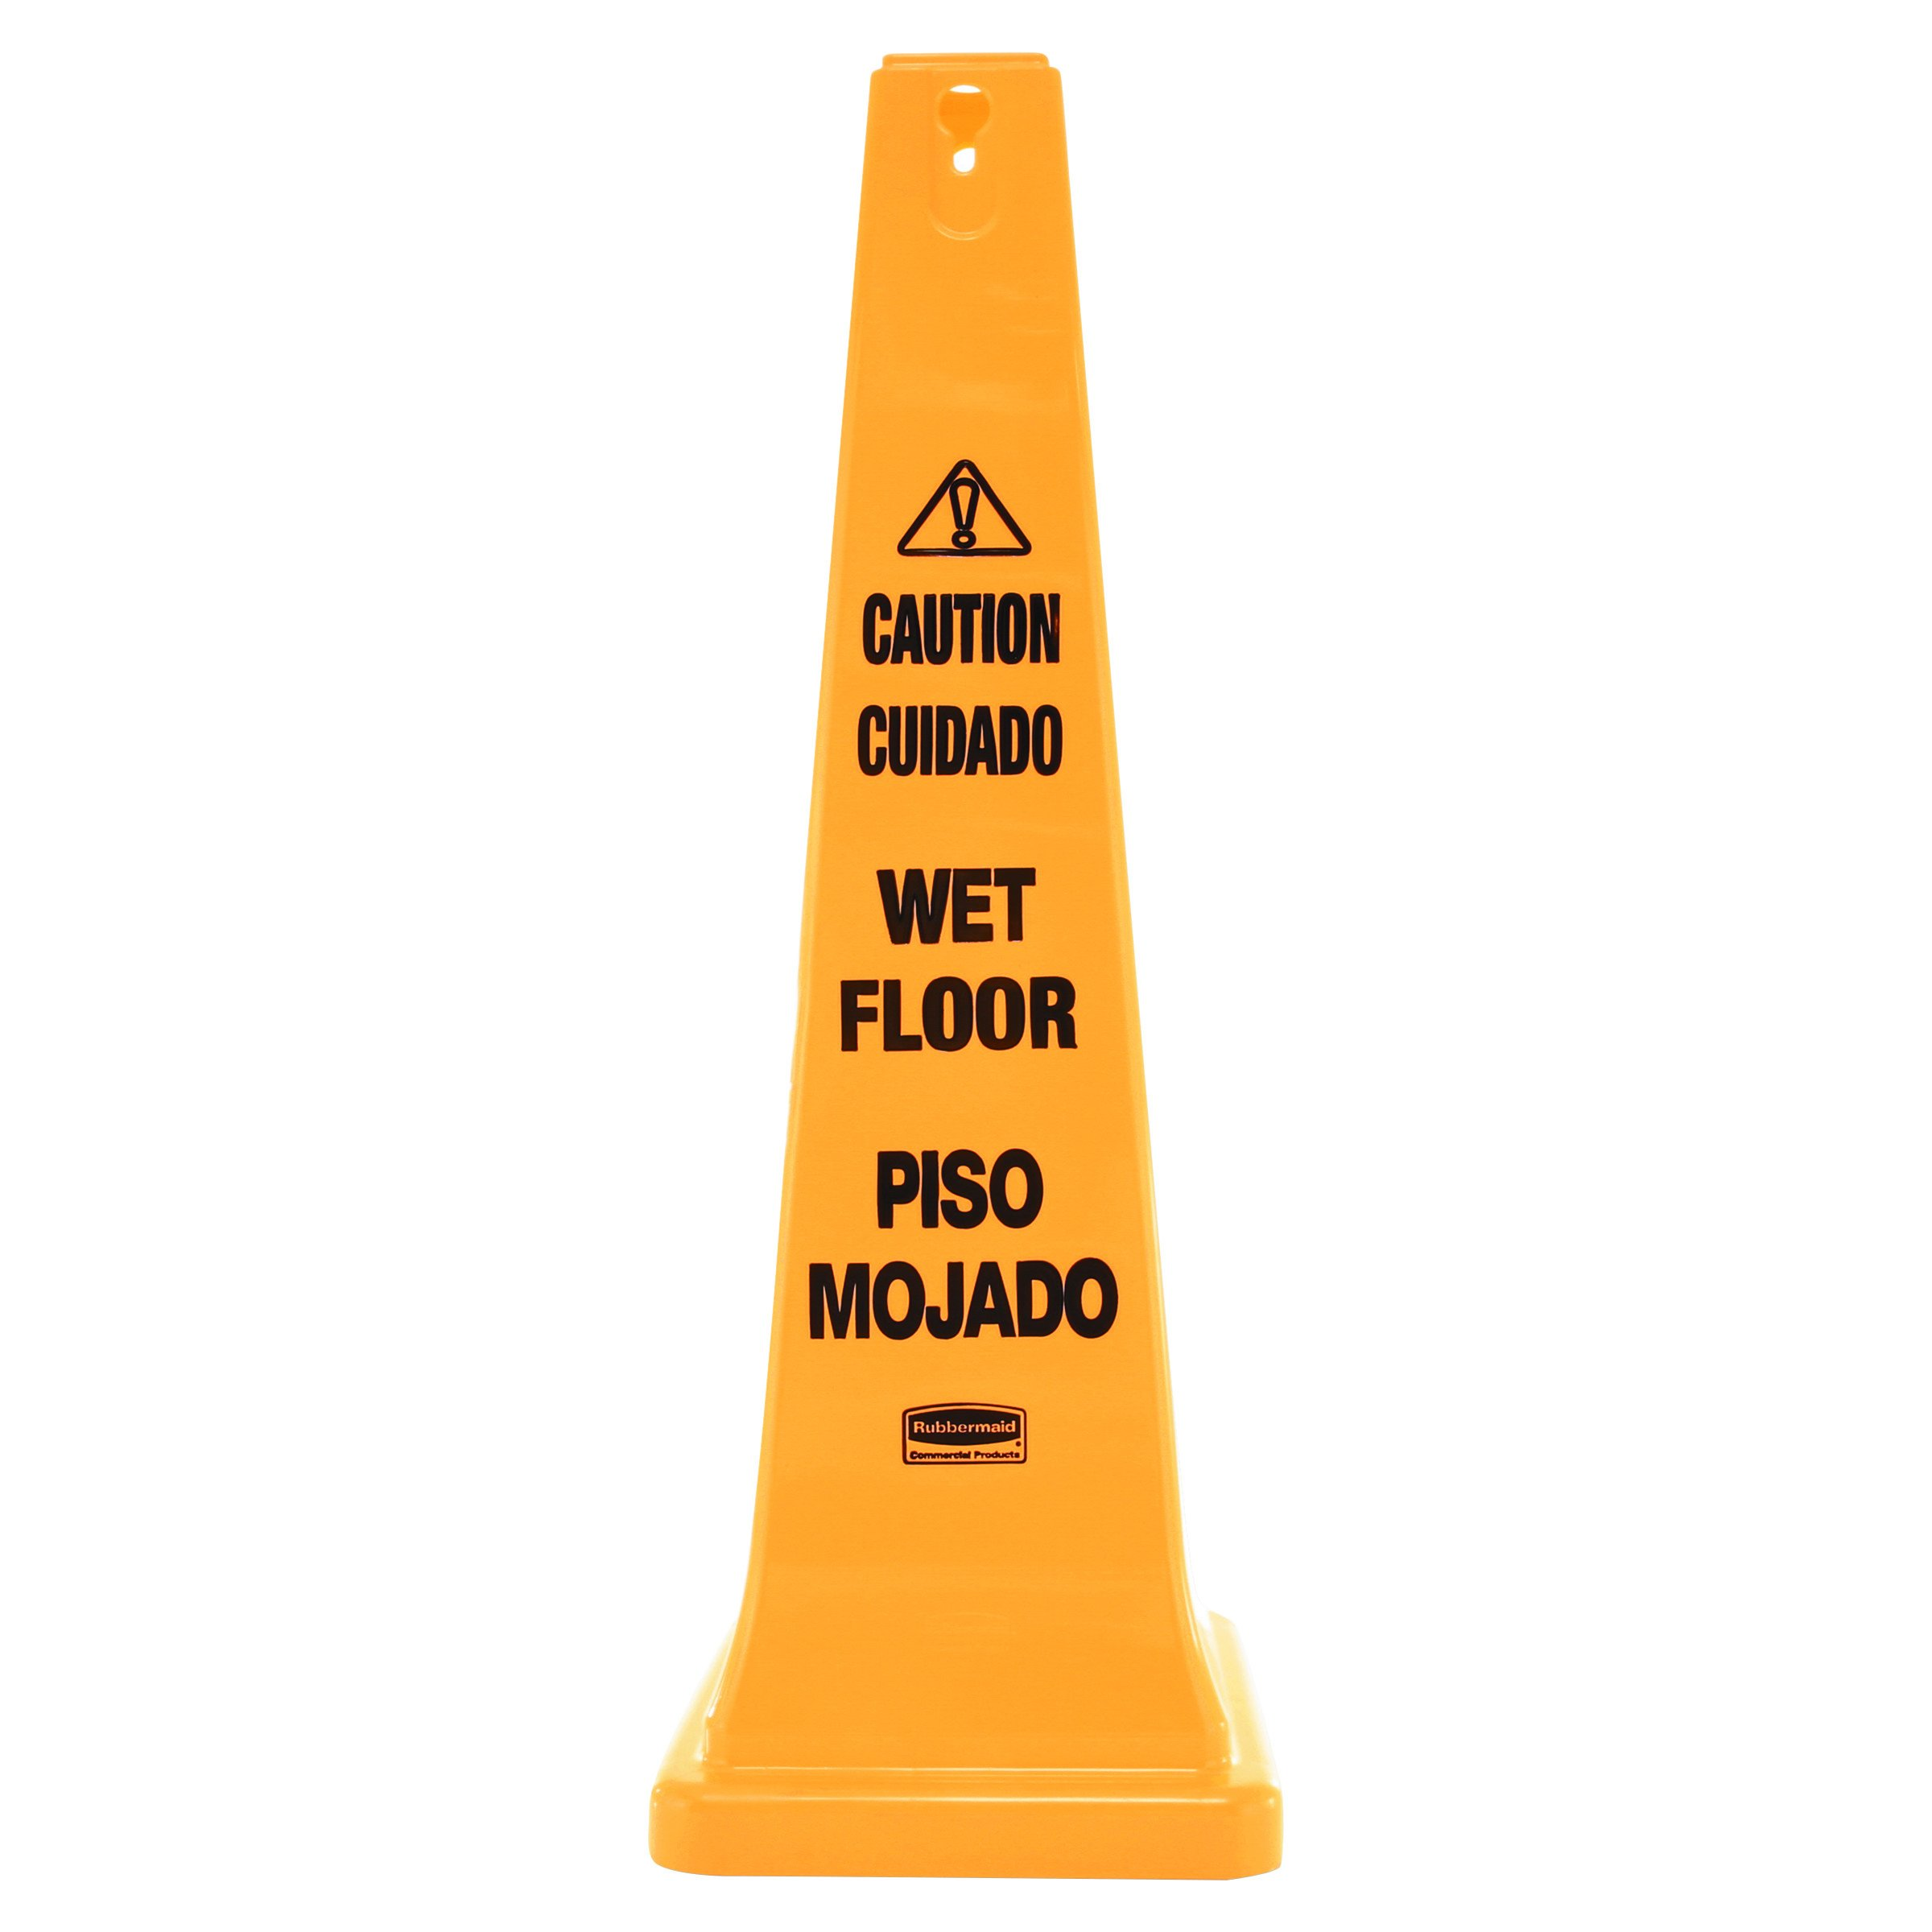 Rubbermaid Commercial Safety Cone, Caution, 36-Inch, Multilingual, FG627677YEL by Rubbermaid Commercial Products (Image #1)